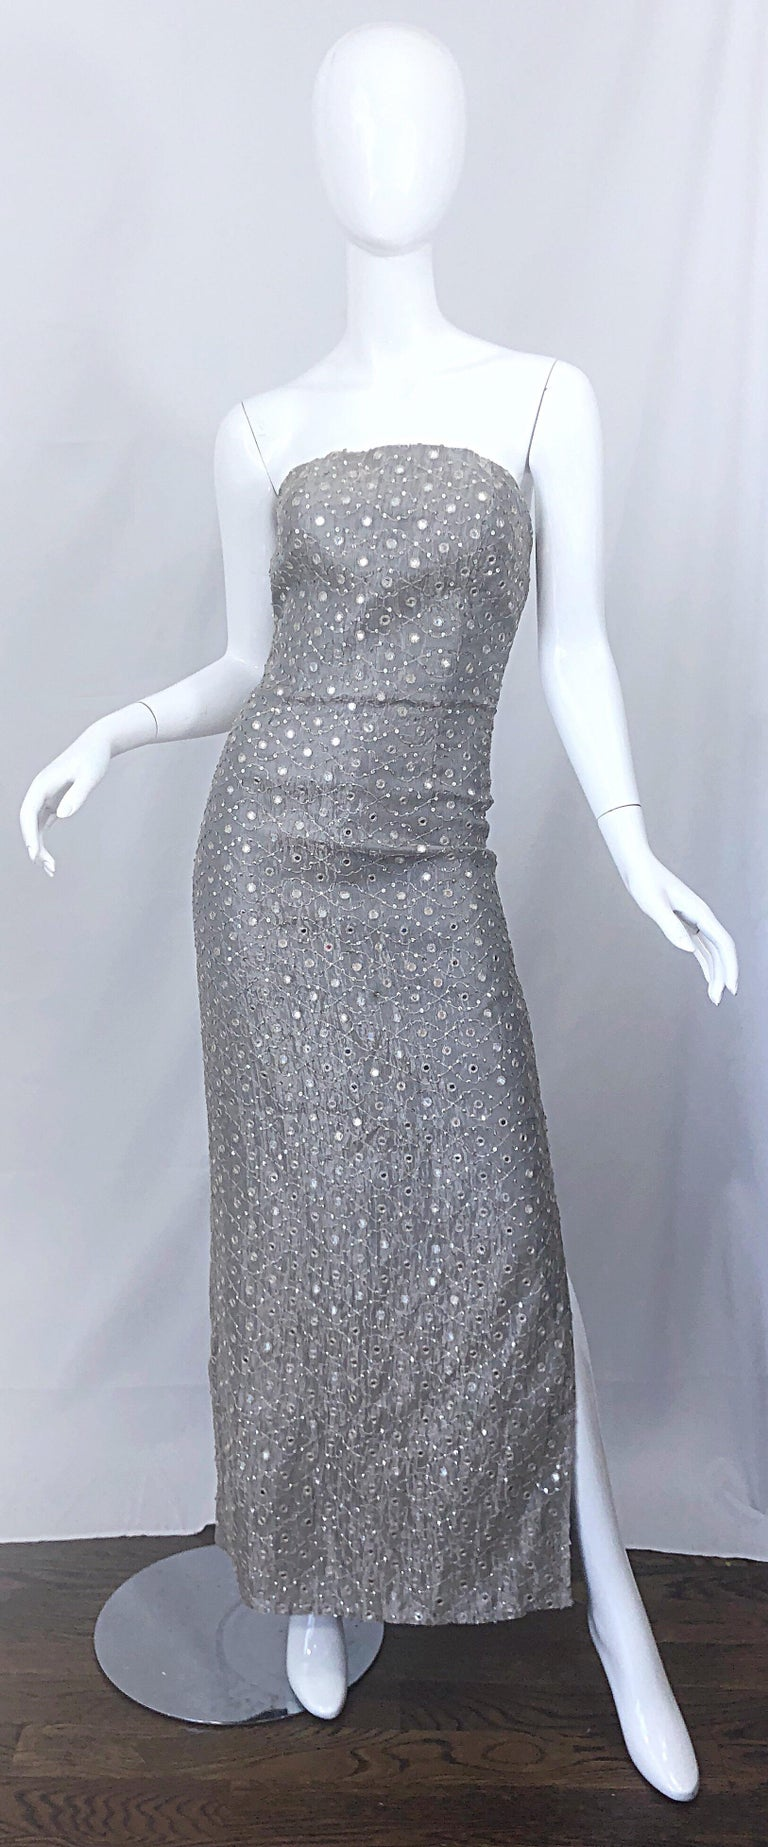 Beautiful vintage 1990s silver gray silk mirrored sequin couture strapless evening dress / gown! Features a fitted boned bodice, with a hidden zipper up the back and hook-and-eye closure. Slit up the left leg reveals just the right amount of skin. A